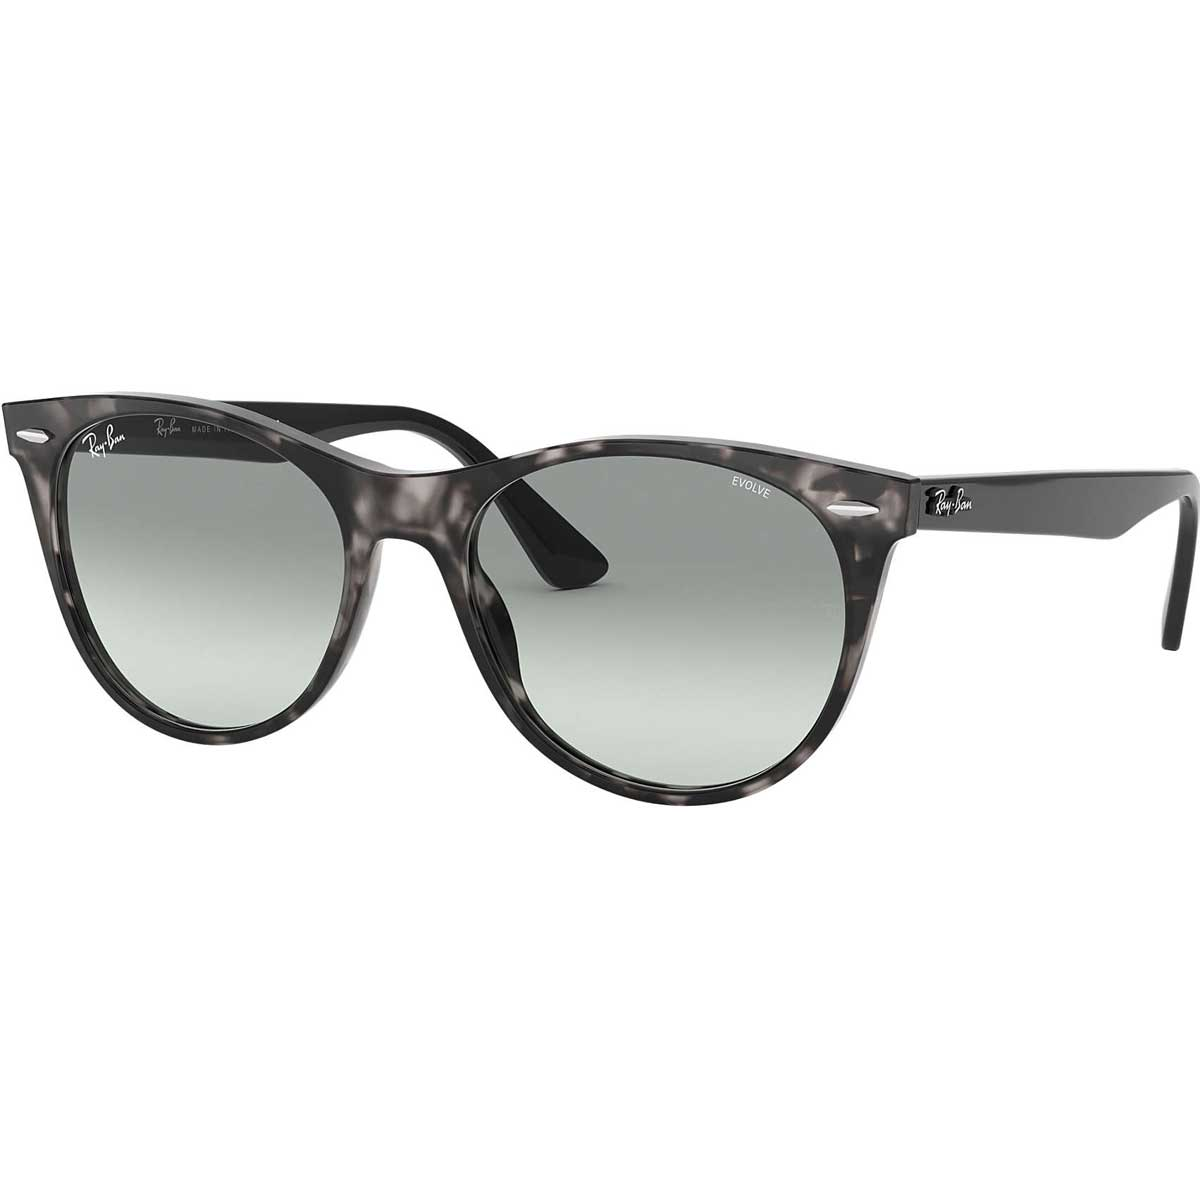 Ray-Ban Wayfarer II Washed Evolve Adult Lifestyle Sunglasses New - Missing Tags-0RB2185